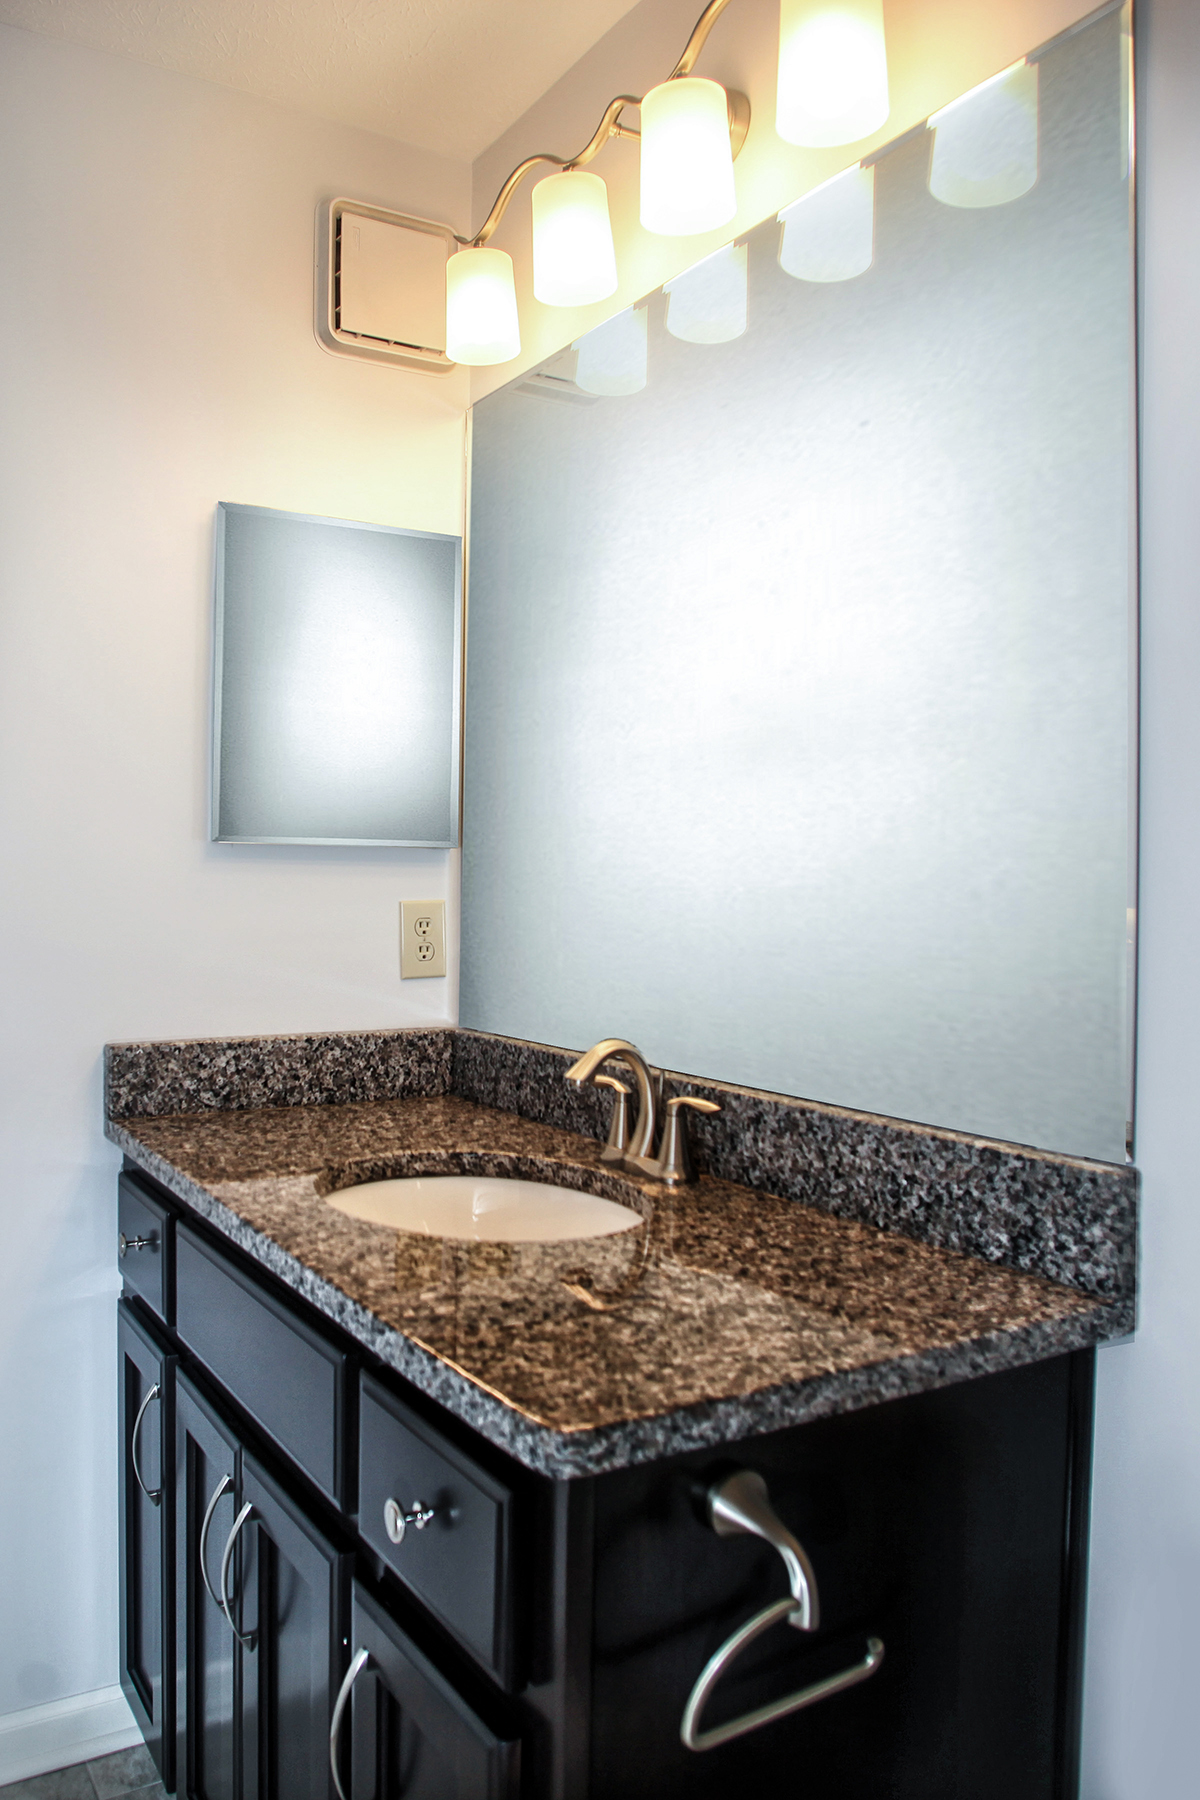 The Custom Made Wood Stained Vanity Features A Granite Countertop And Mirrored Medicine